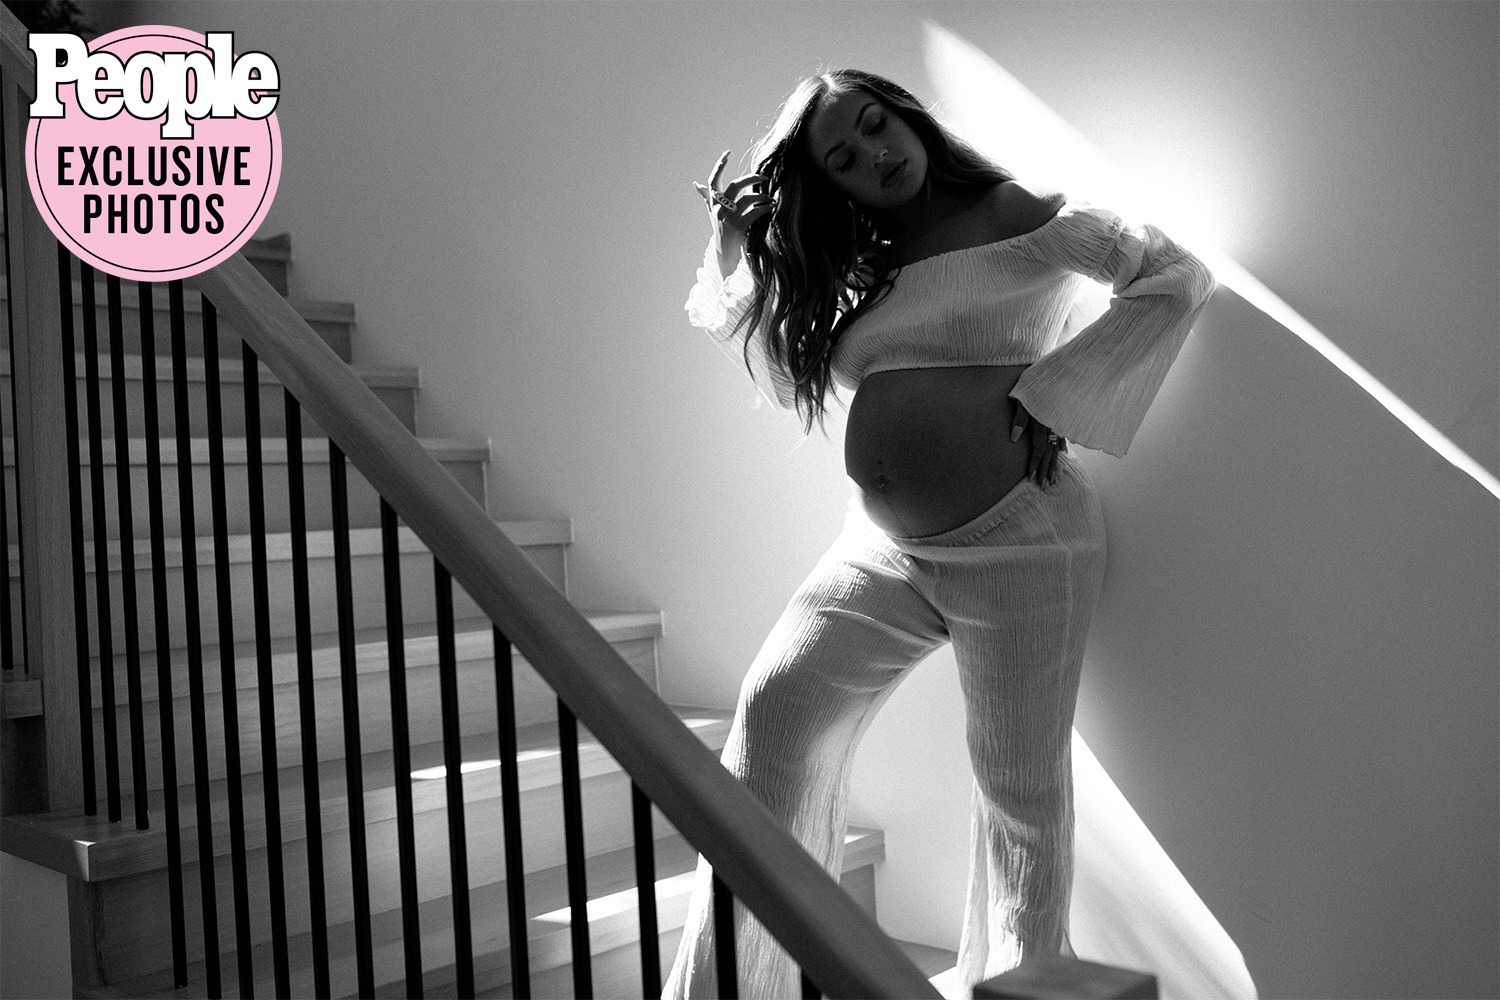 Inanna Sarkis Pregnancy Exclusive